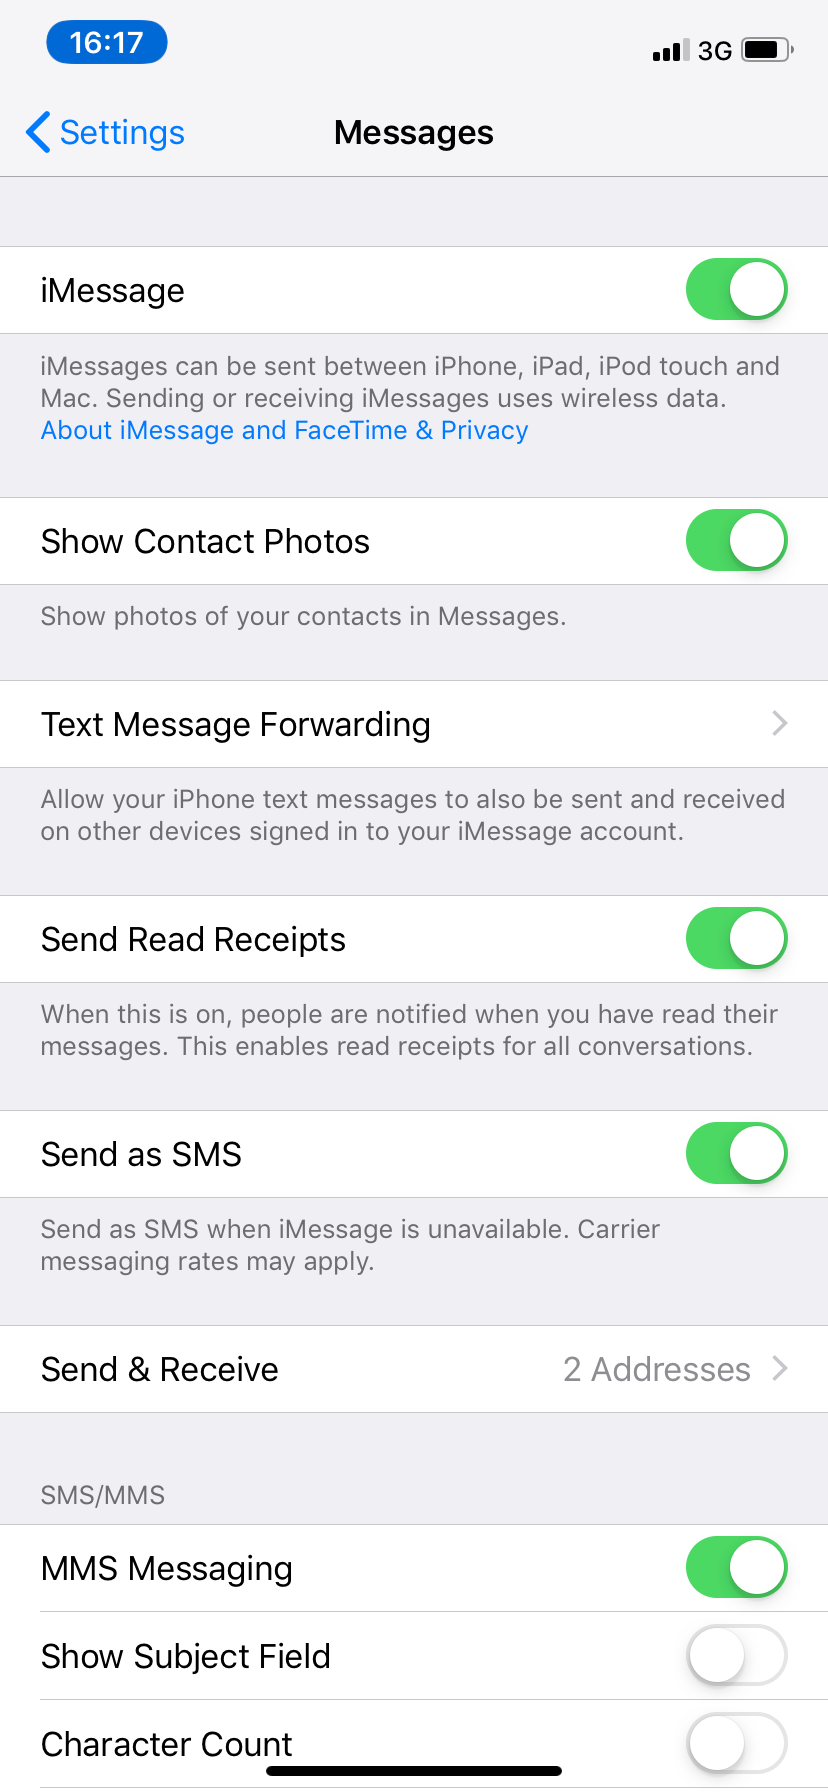 iPhone Won't Send Text Messages? 10 Possible Fixes to Try